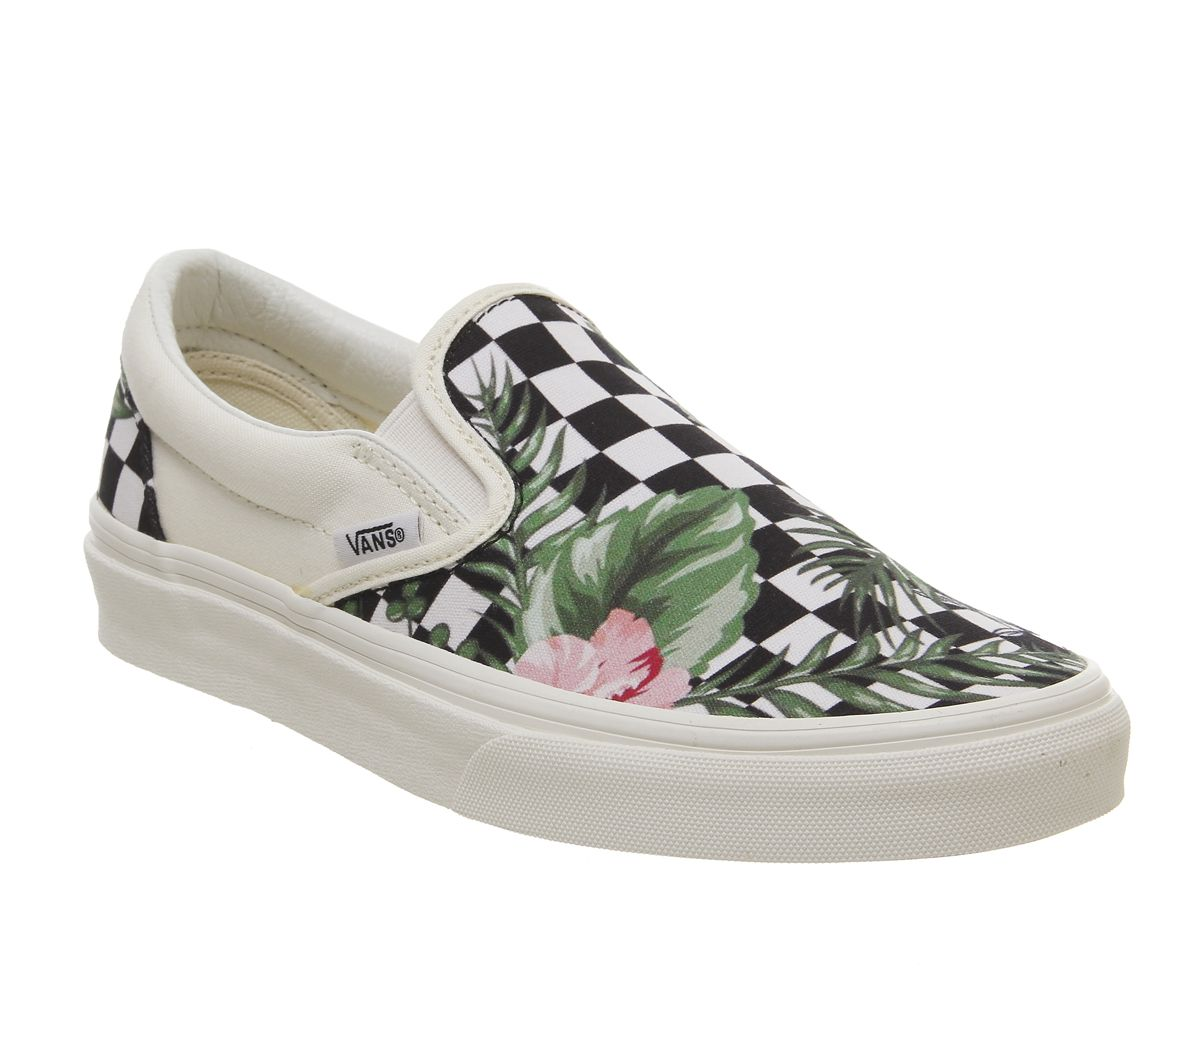 the best where to buy fast delivery Vans Classic Slip On